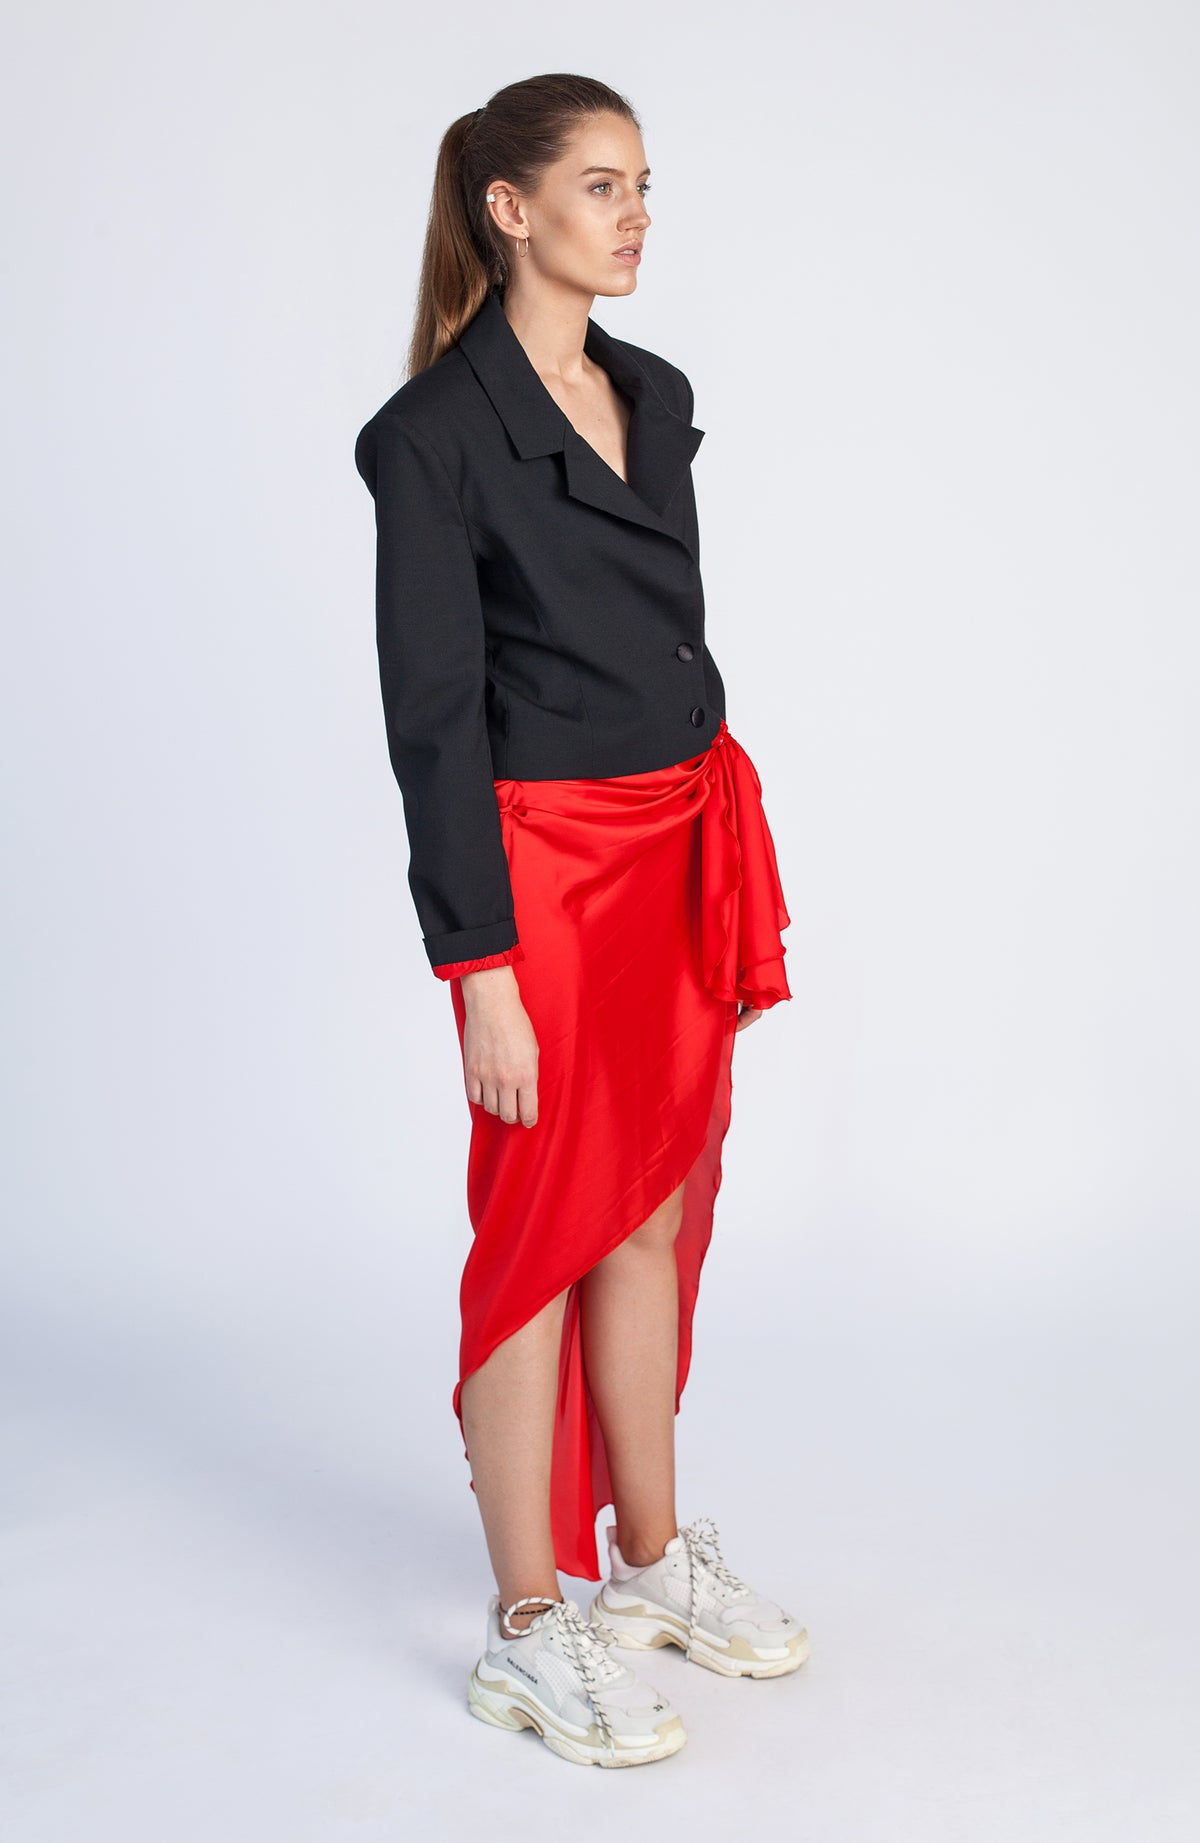 SAMANTHA | Scarlet red long drape skirt